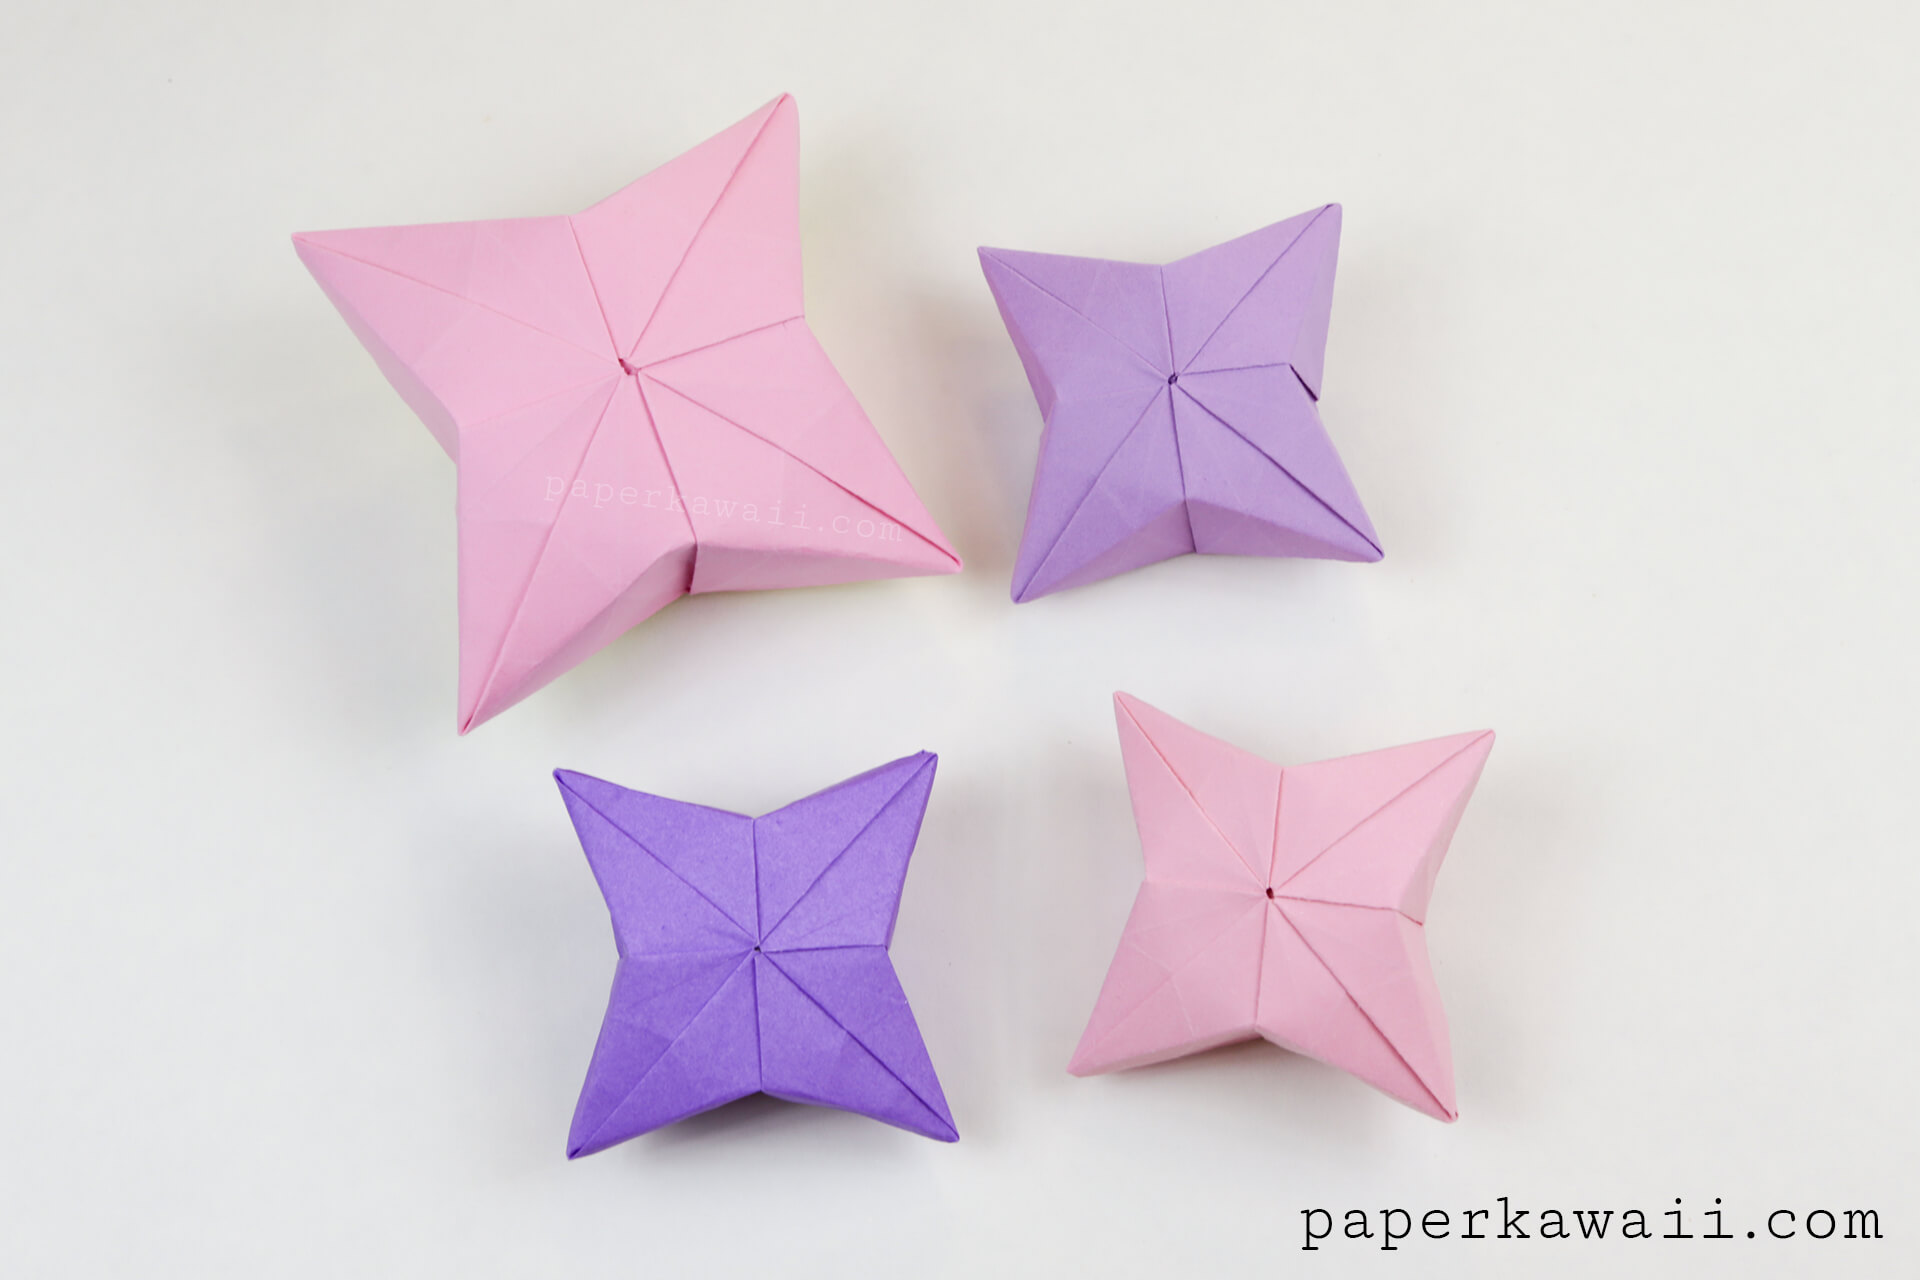 3D Origami Puffy Star Tutorial